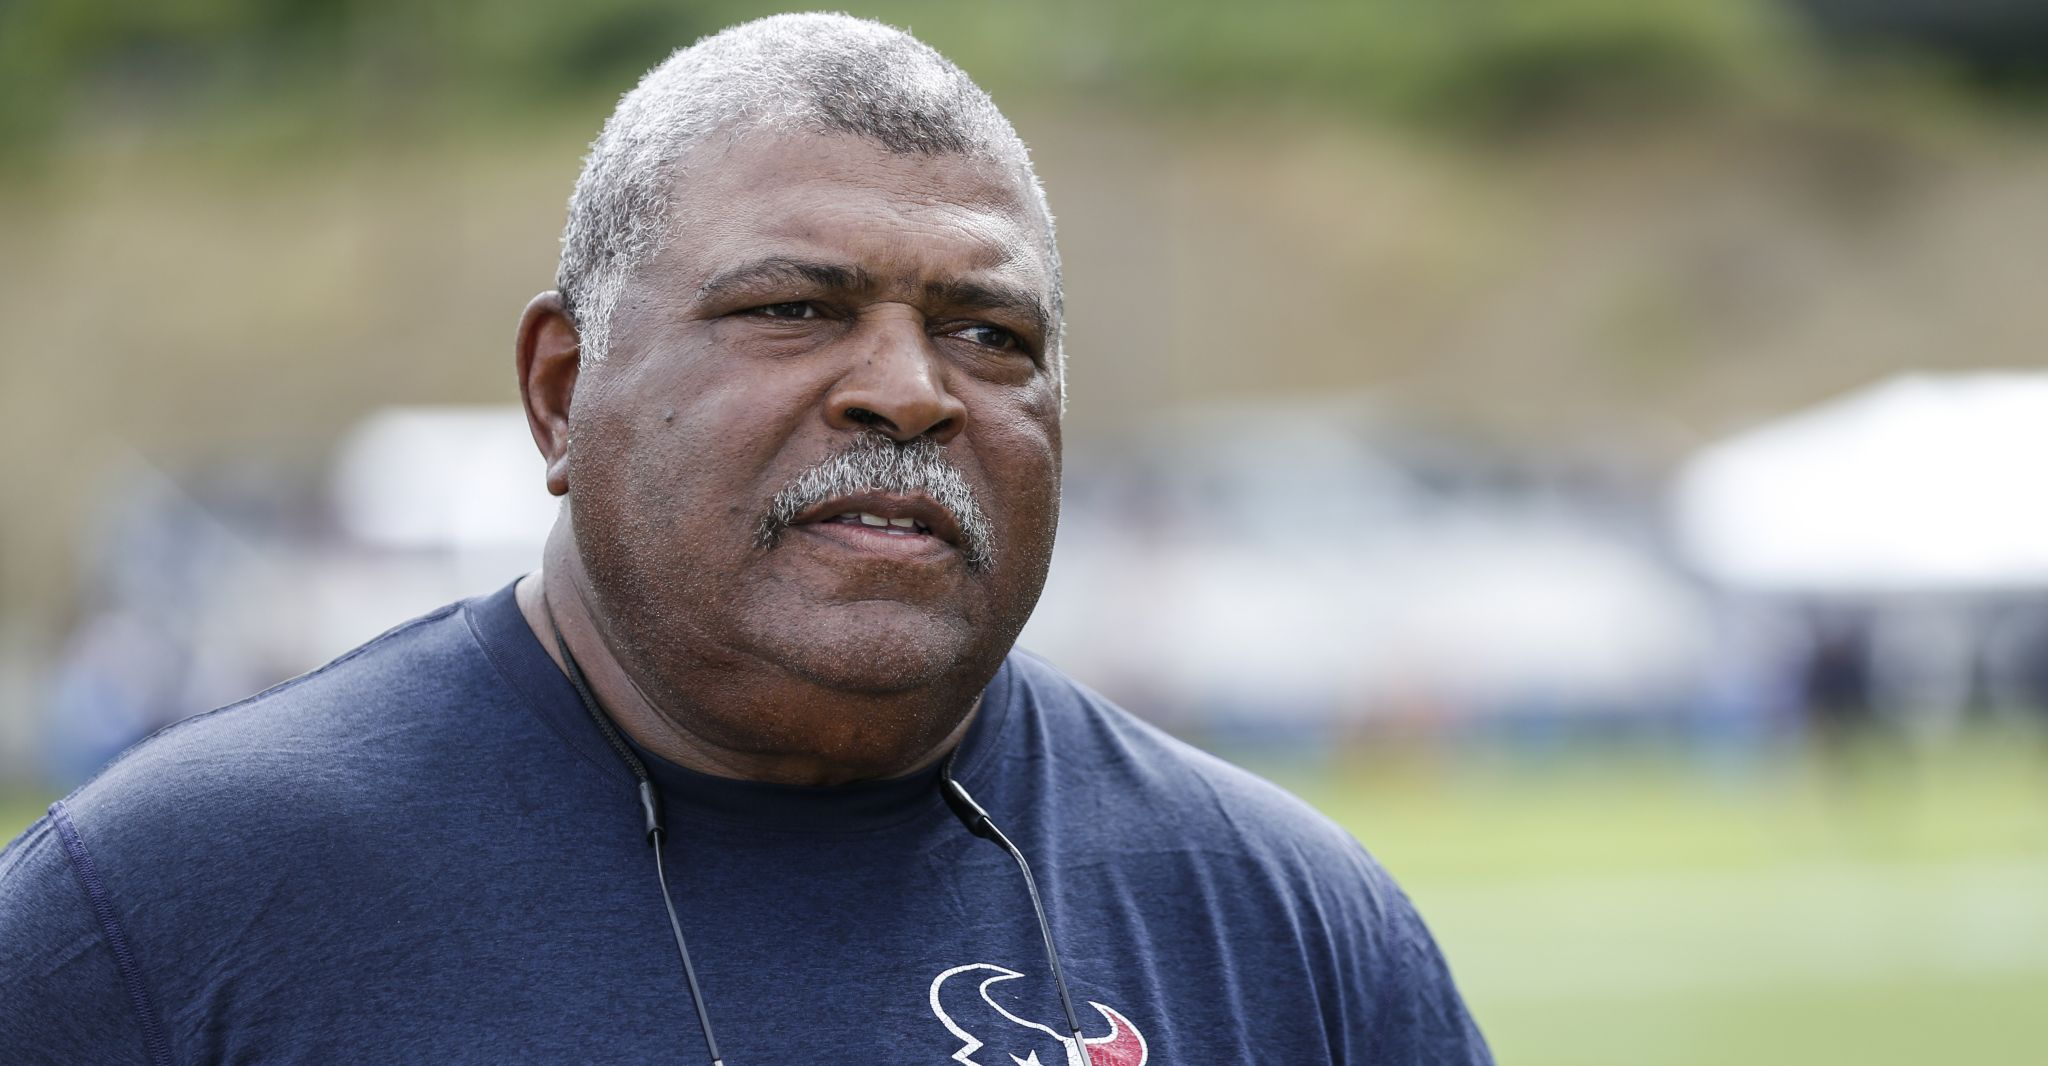 McClain: Texans' Romeo Crennel dials up problems for rookie QBs